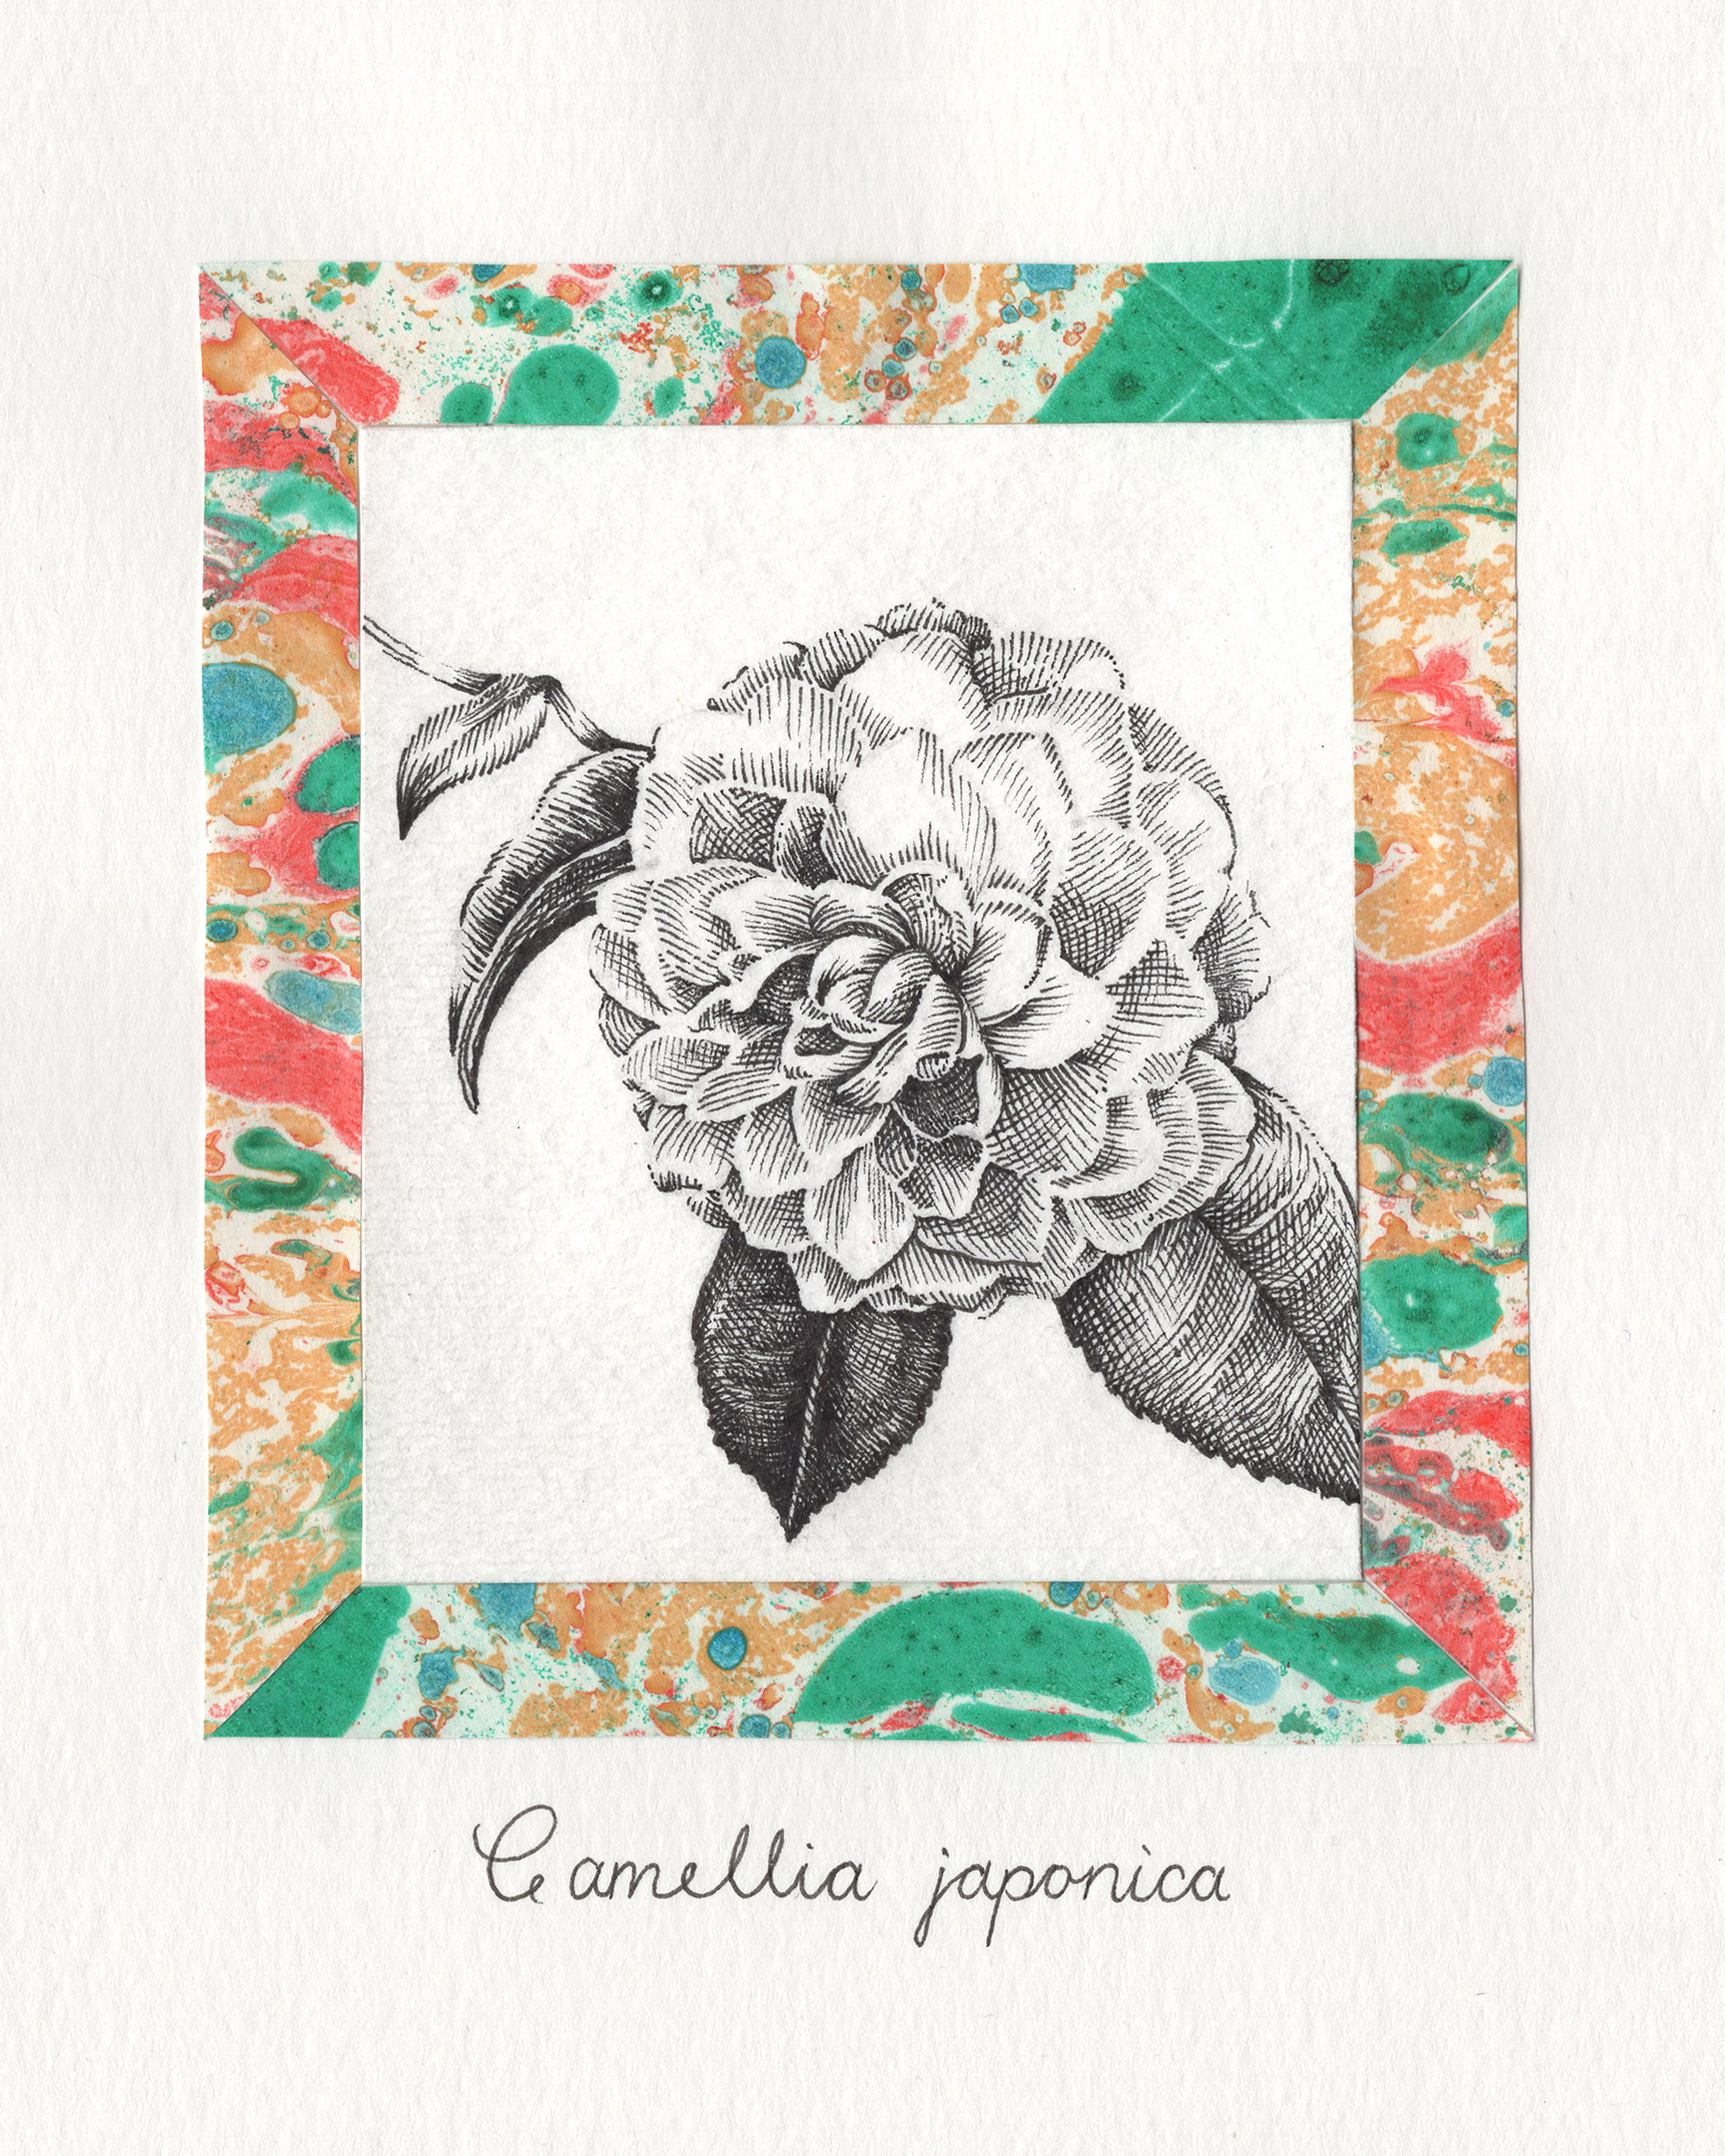 Camellia japonica 4 x 5.jpg